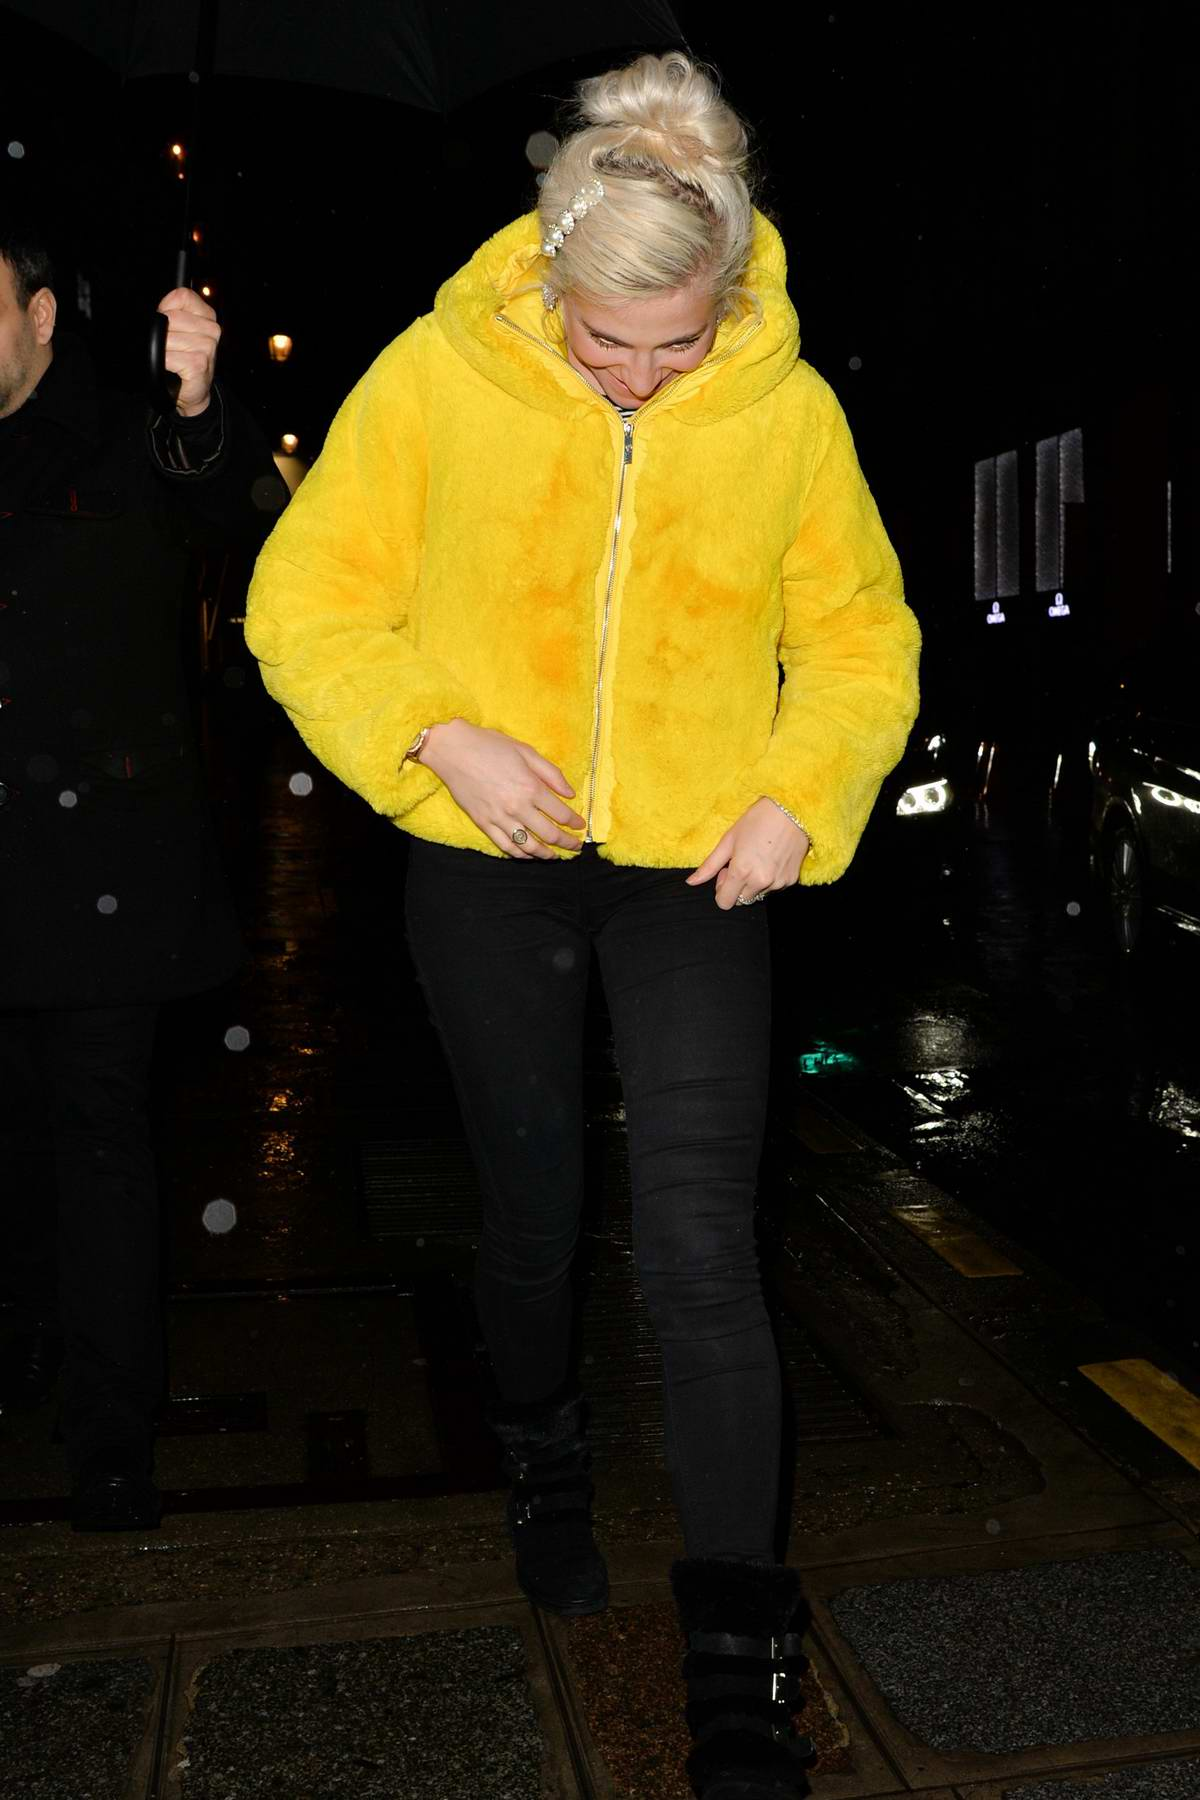 Pixie Lott leaves The Ritz Hotel wearing a bright yellow jacket in Paris, France